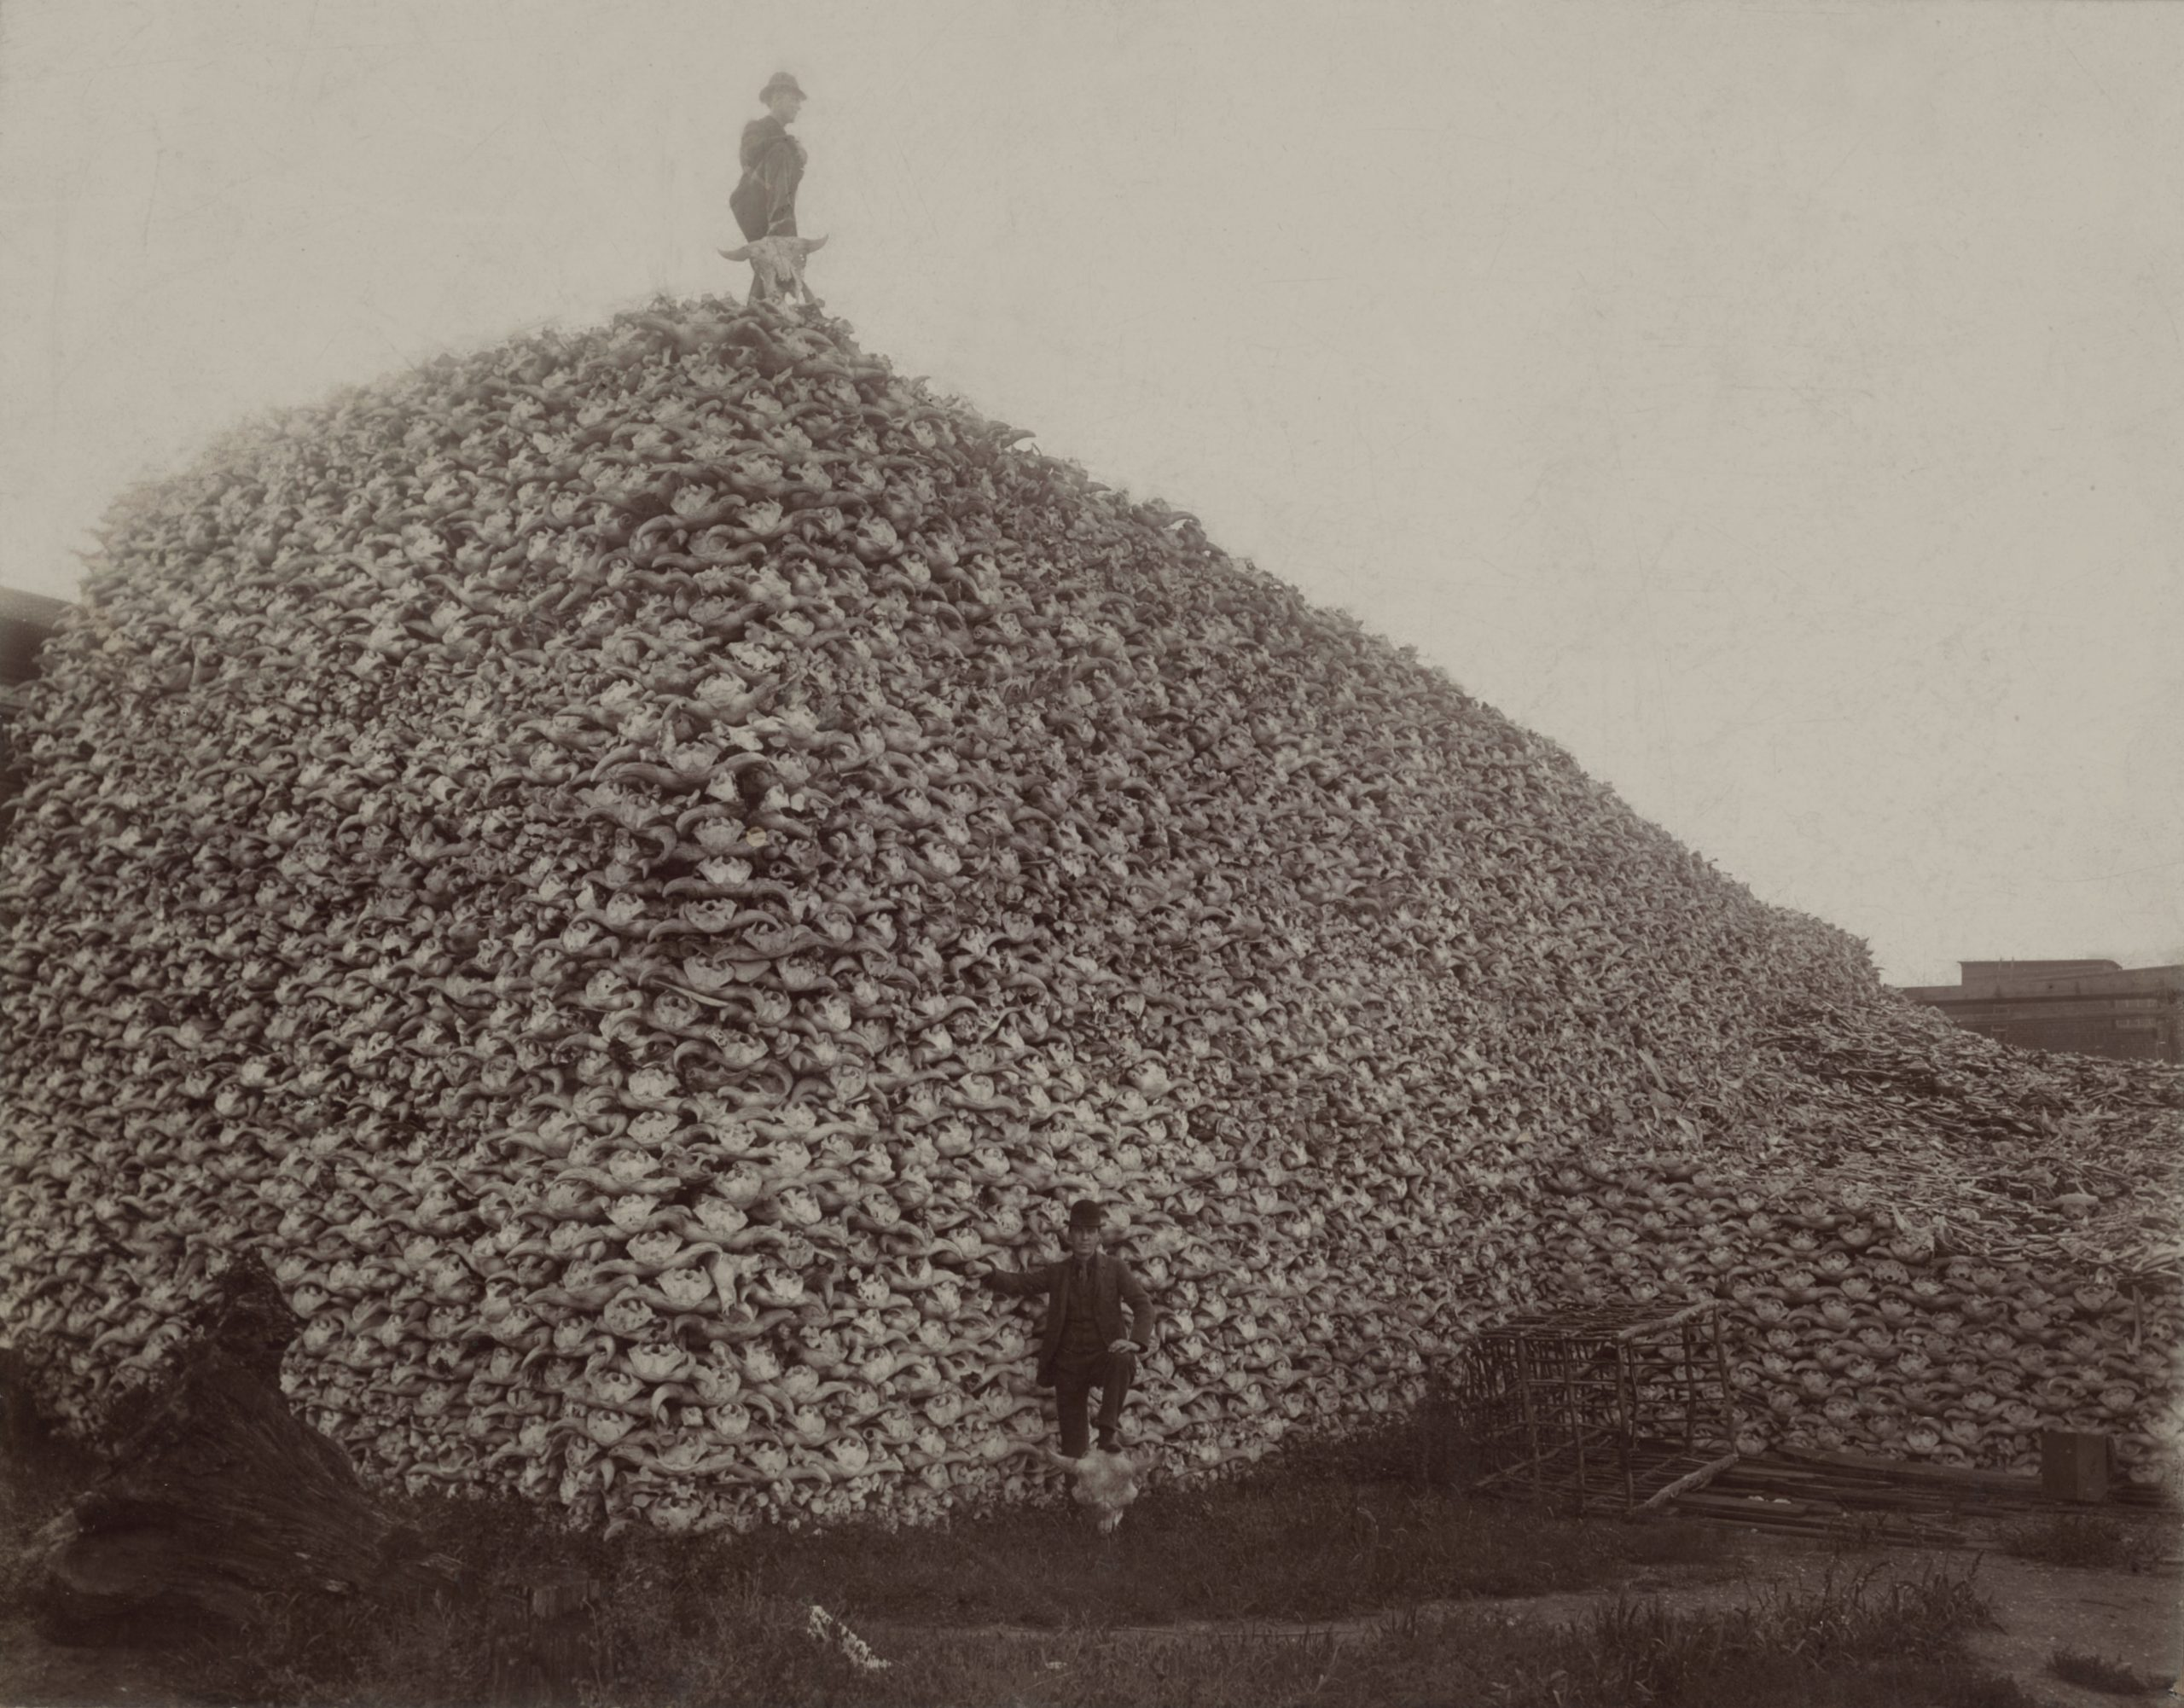 Mountain of bison skulls